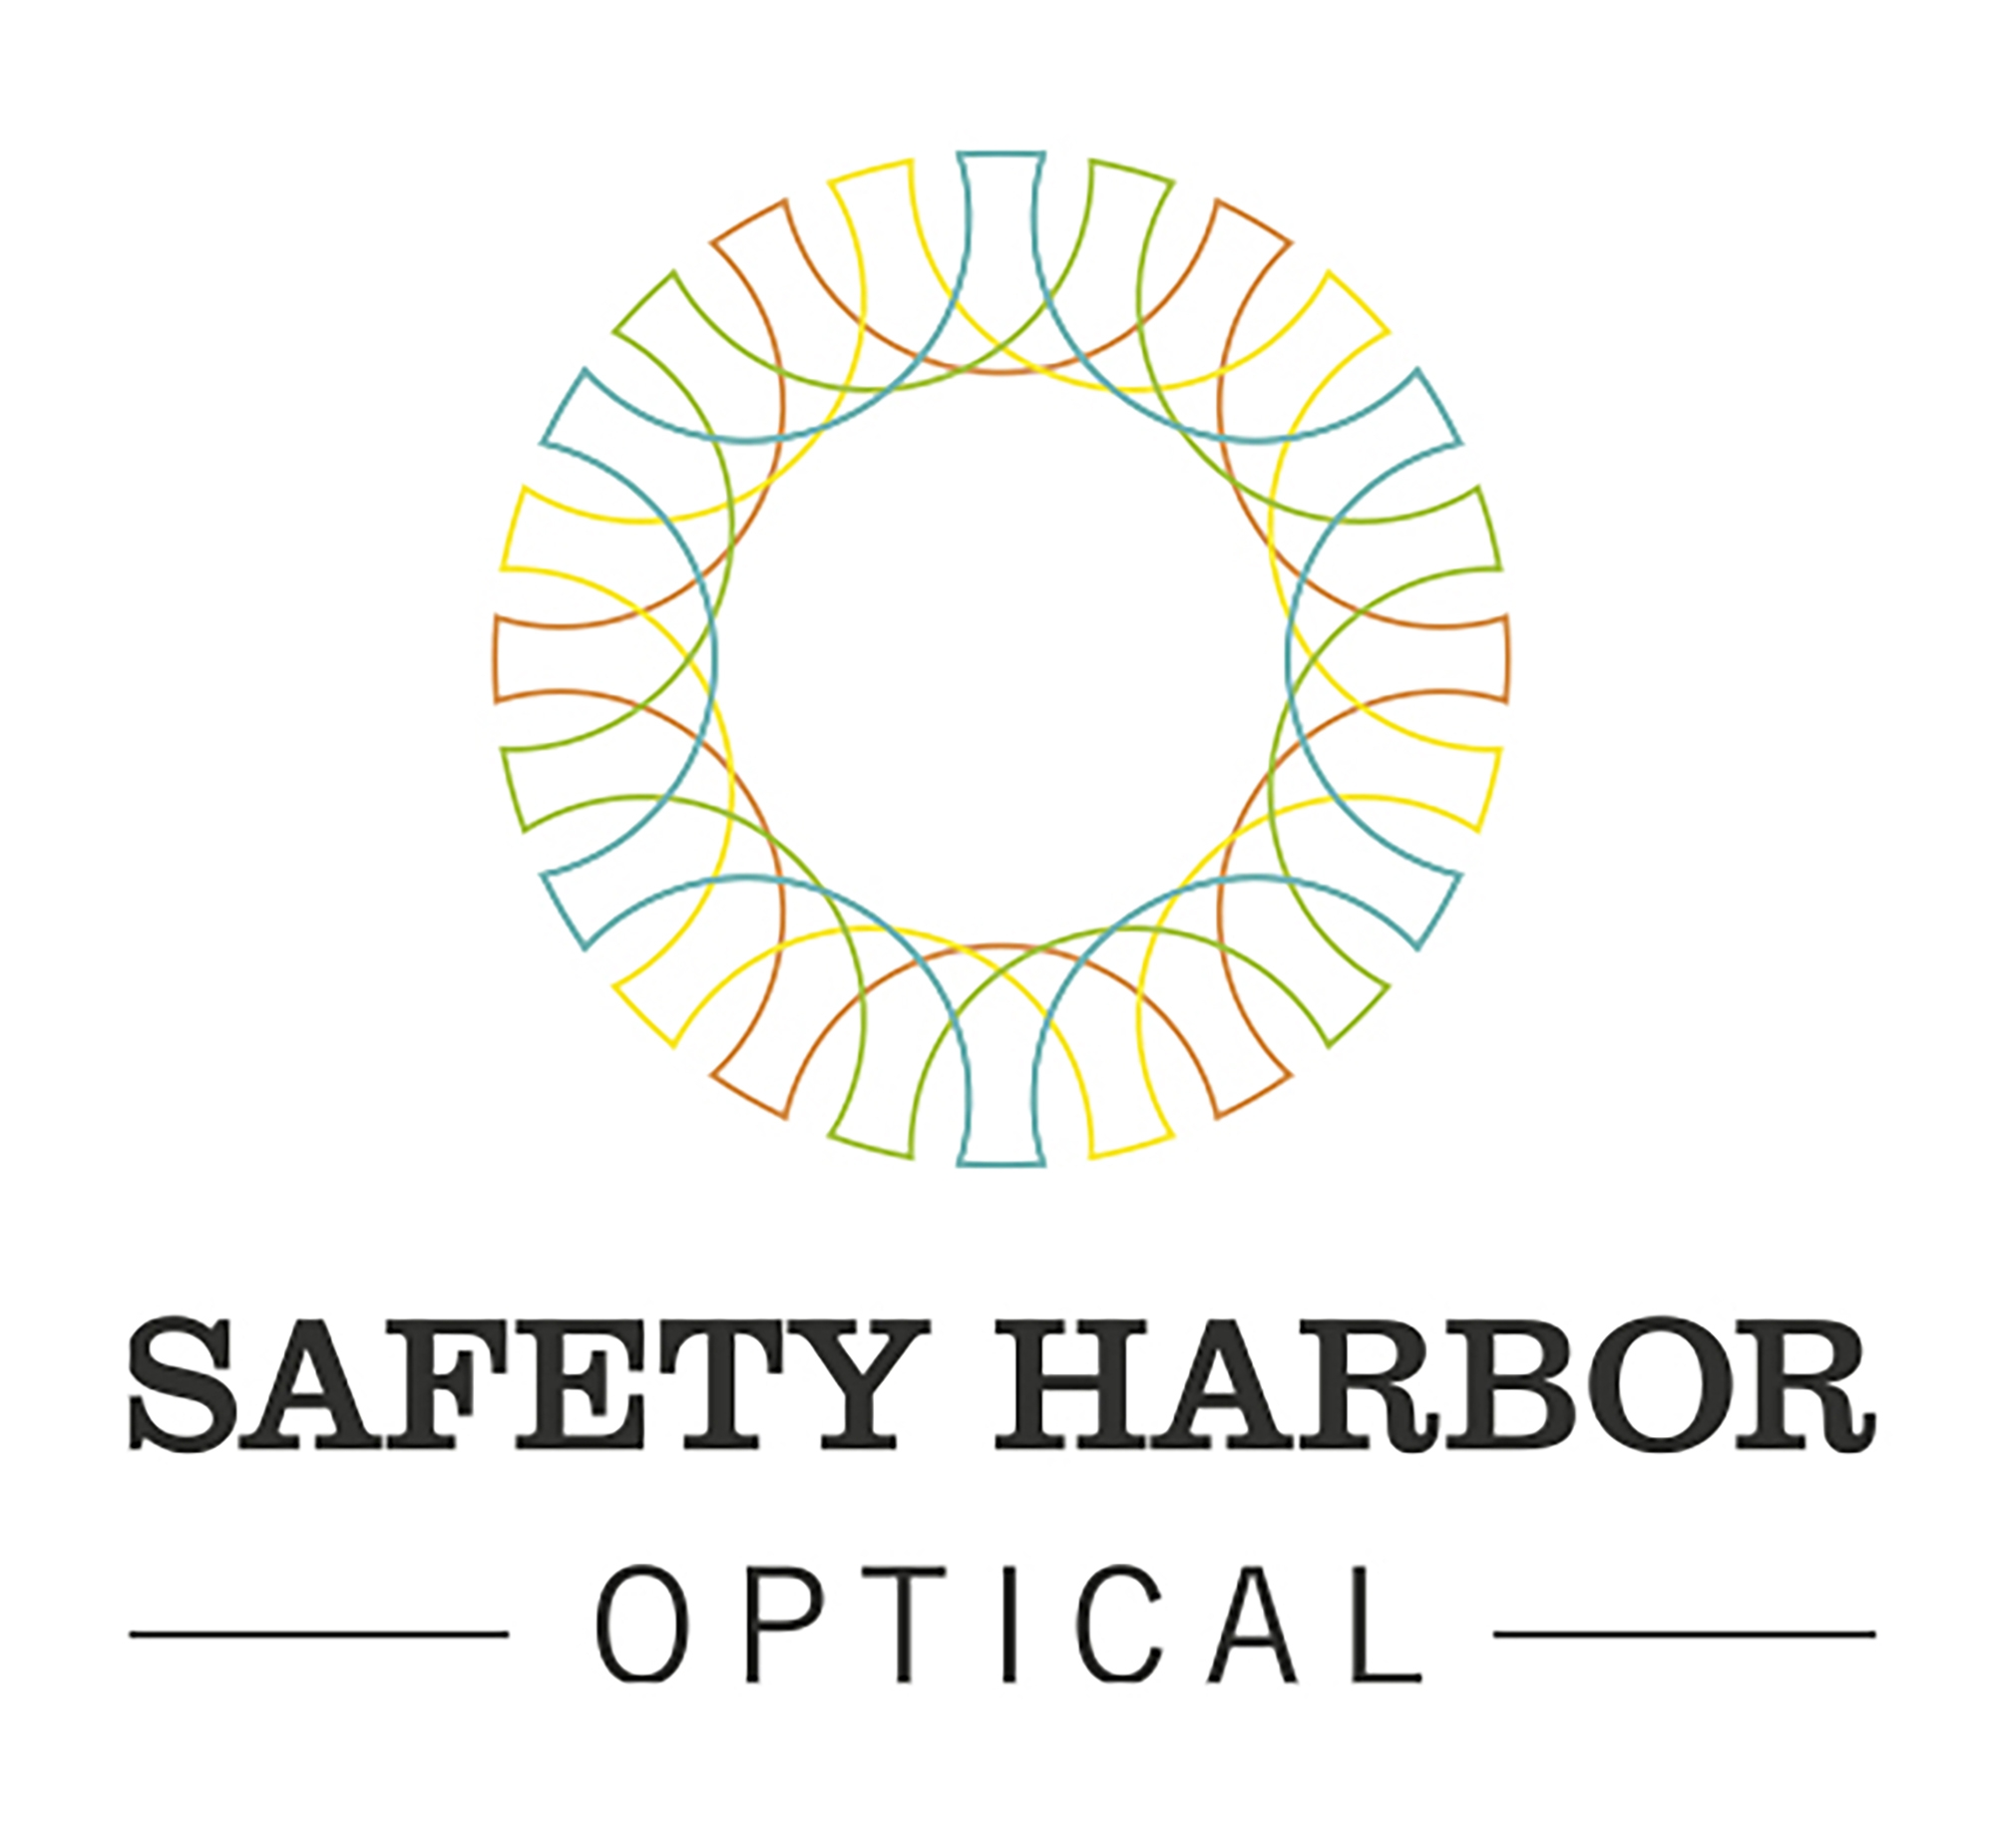 Safety Harbor Optical